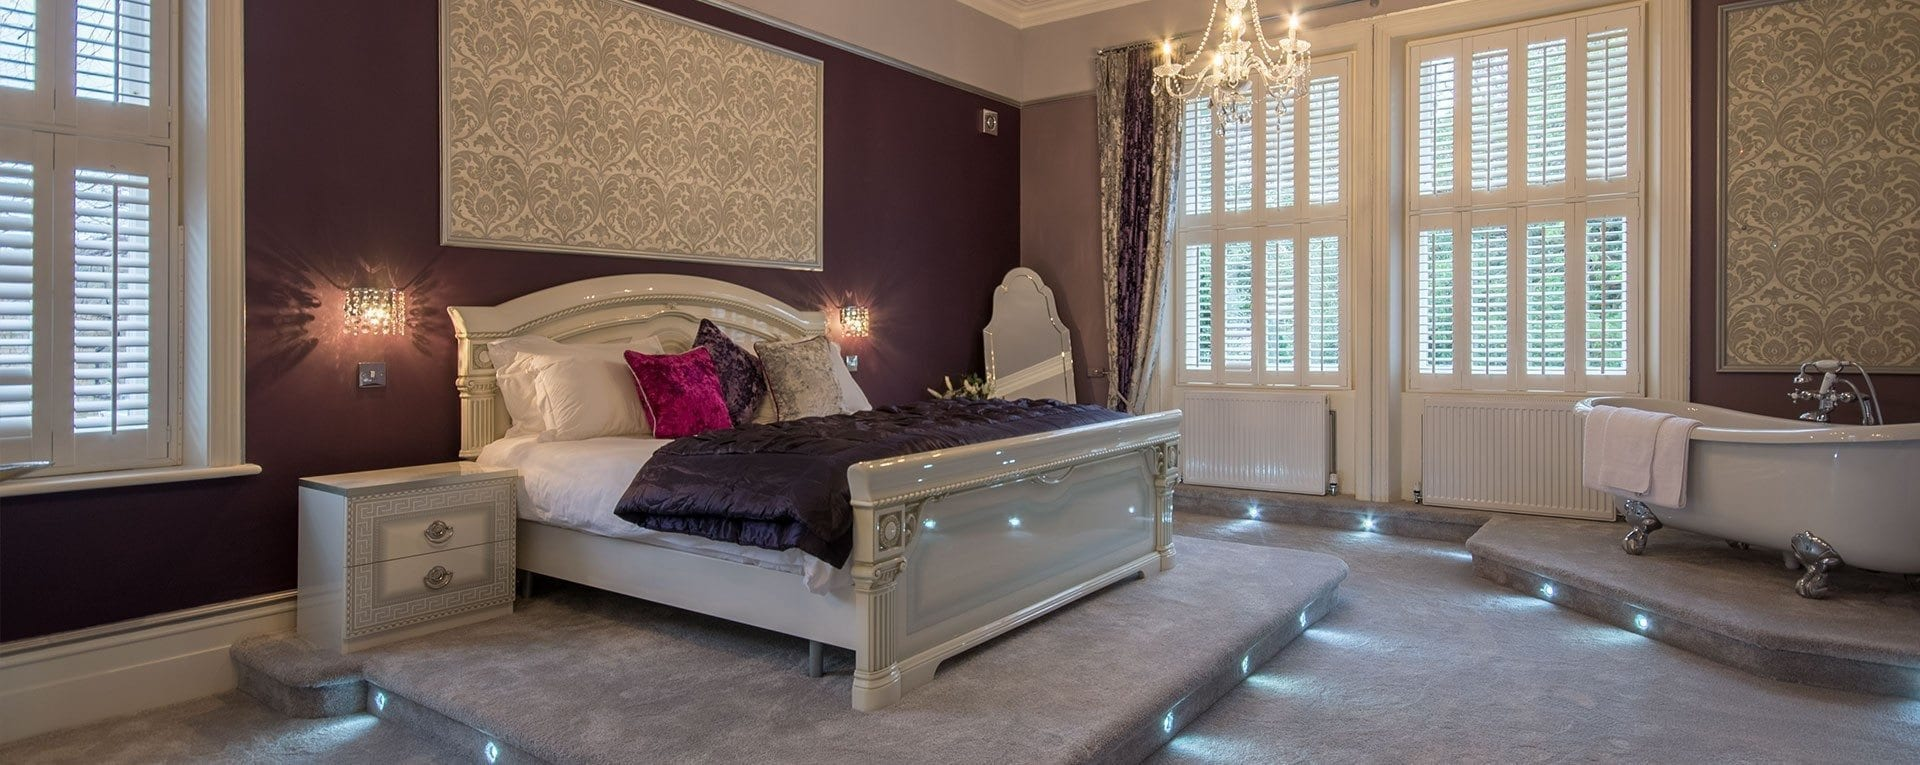 Gold Cup bridal suite at the Derby Manor in Bournemouth